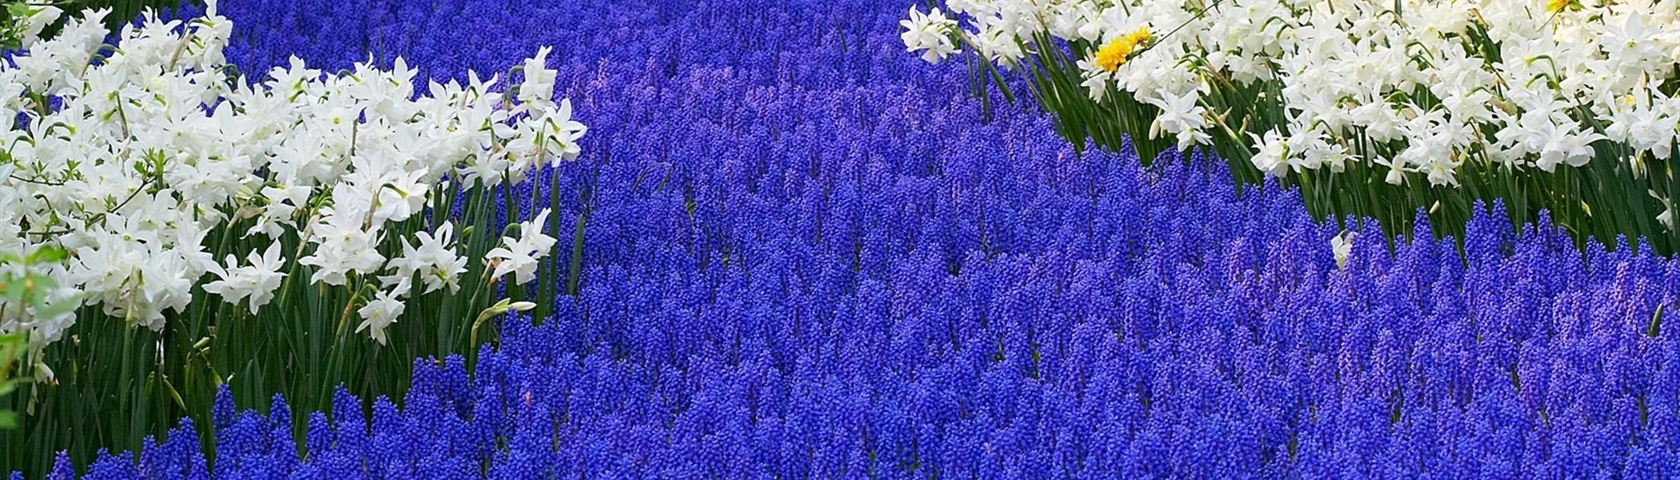 Grape Hyacinths & Daffodils